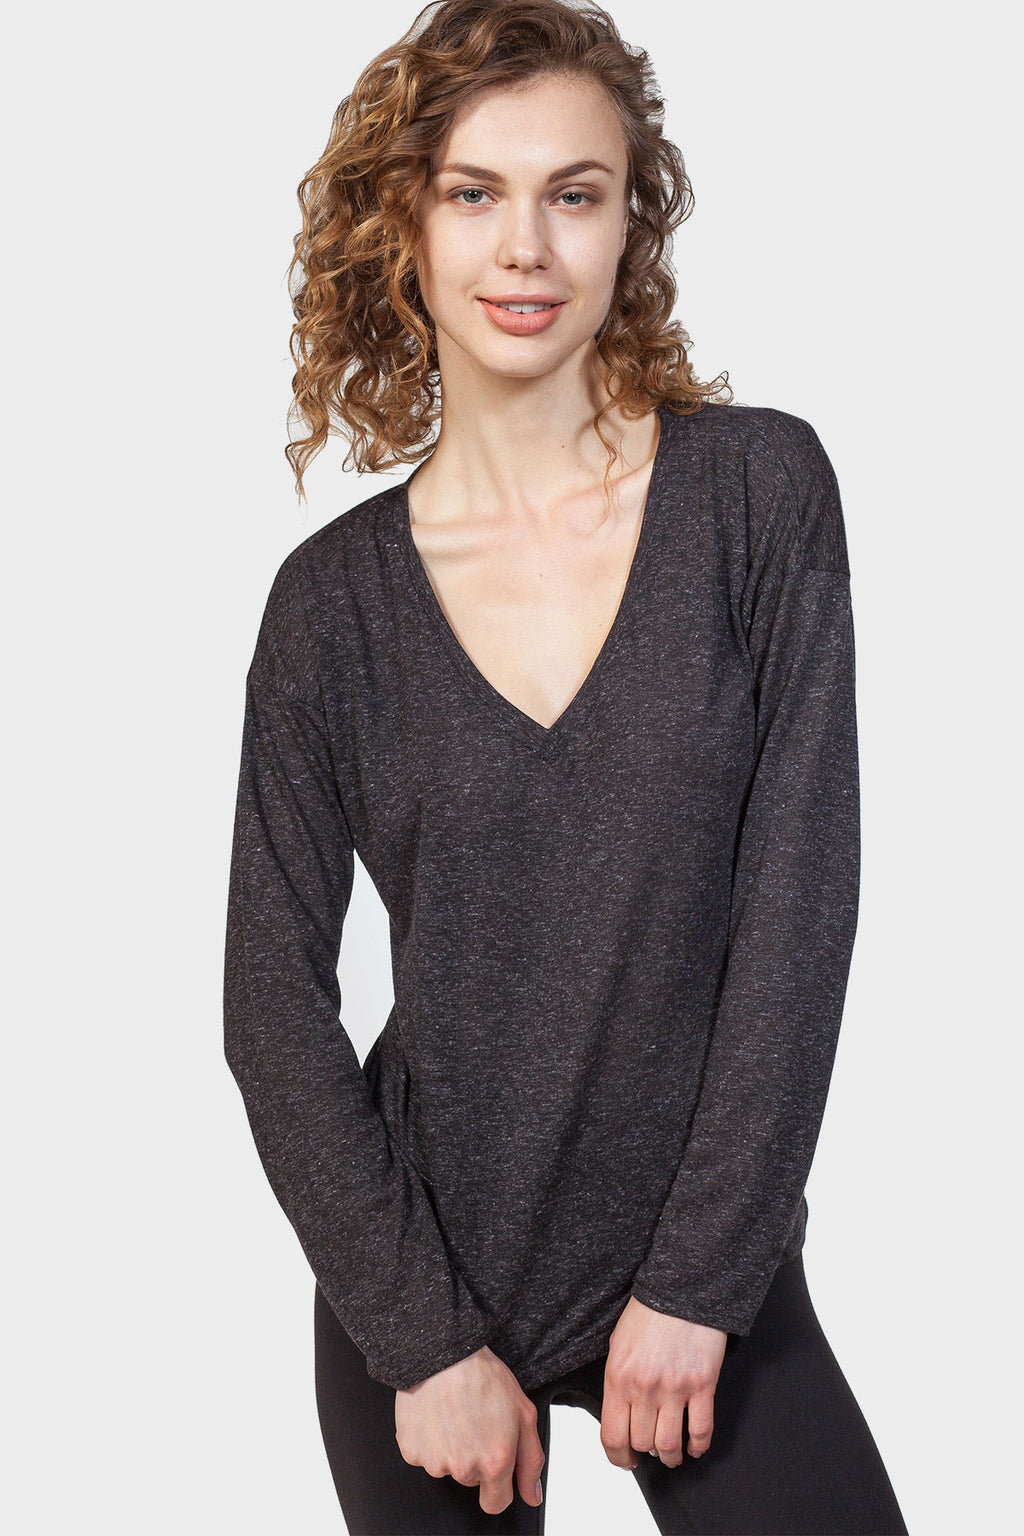 V-NECK SWEATSHIRT - 337 BRAND Women's Sustainable Clothing